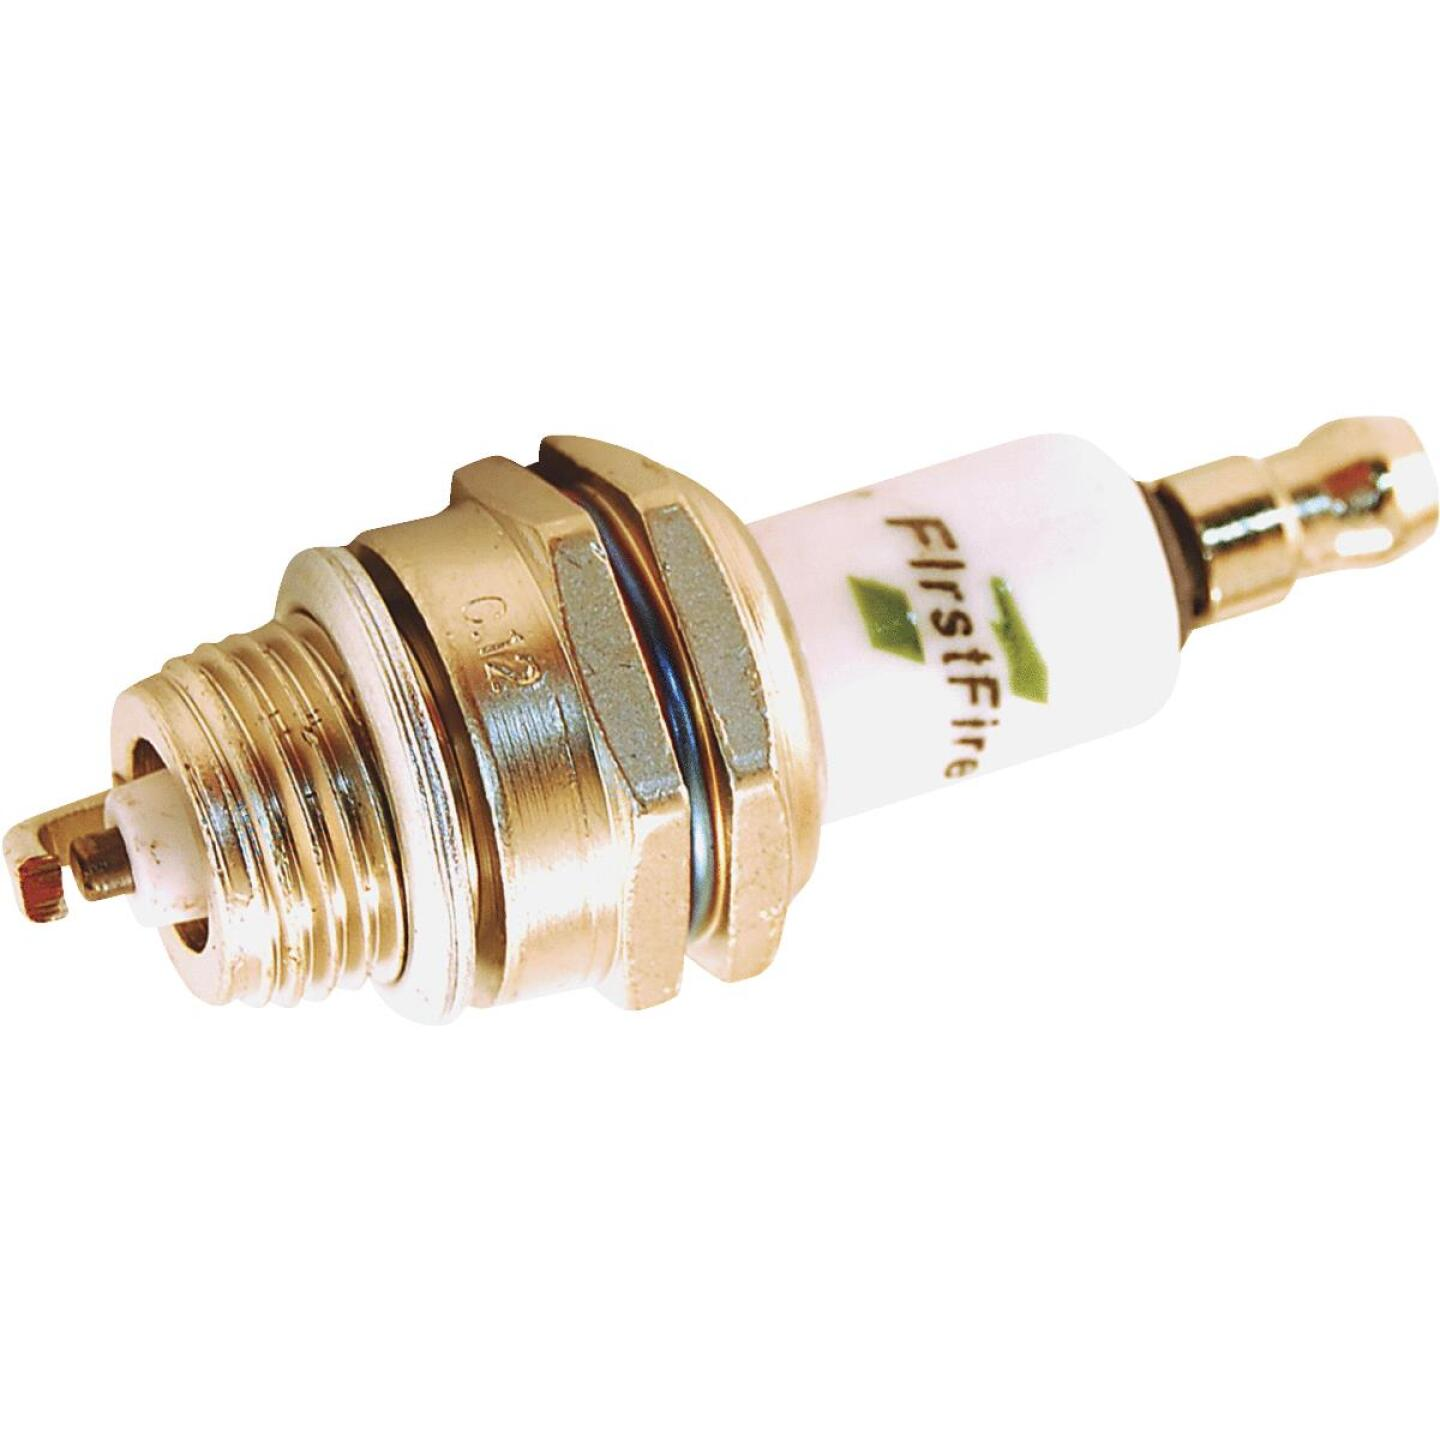 Arnold FirstFire 3/4 In. 2 & 4-Cycle Spark Plug Image 1